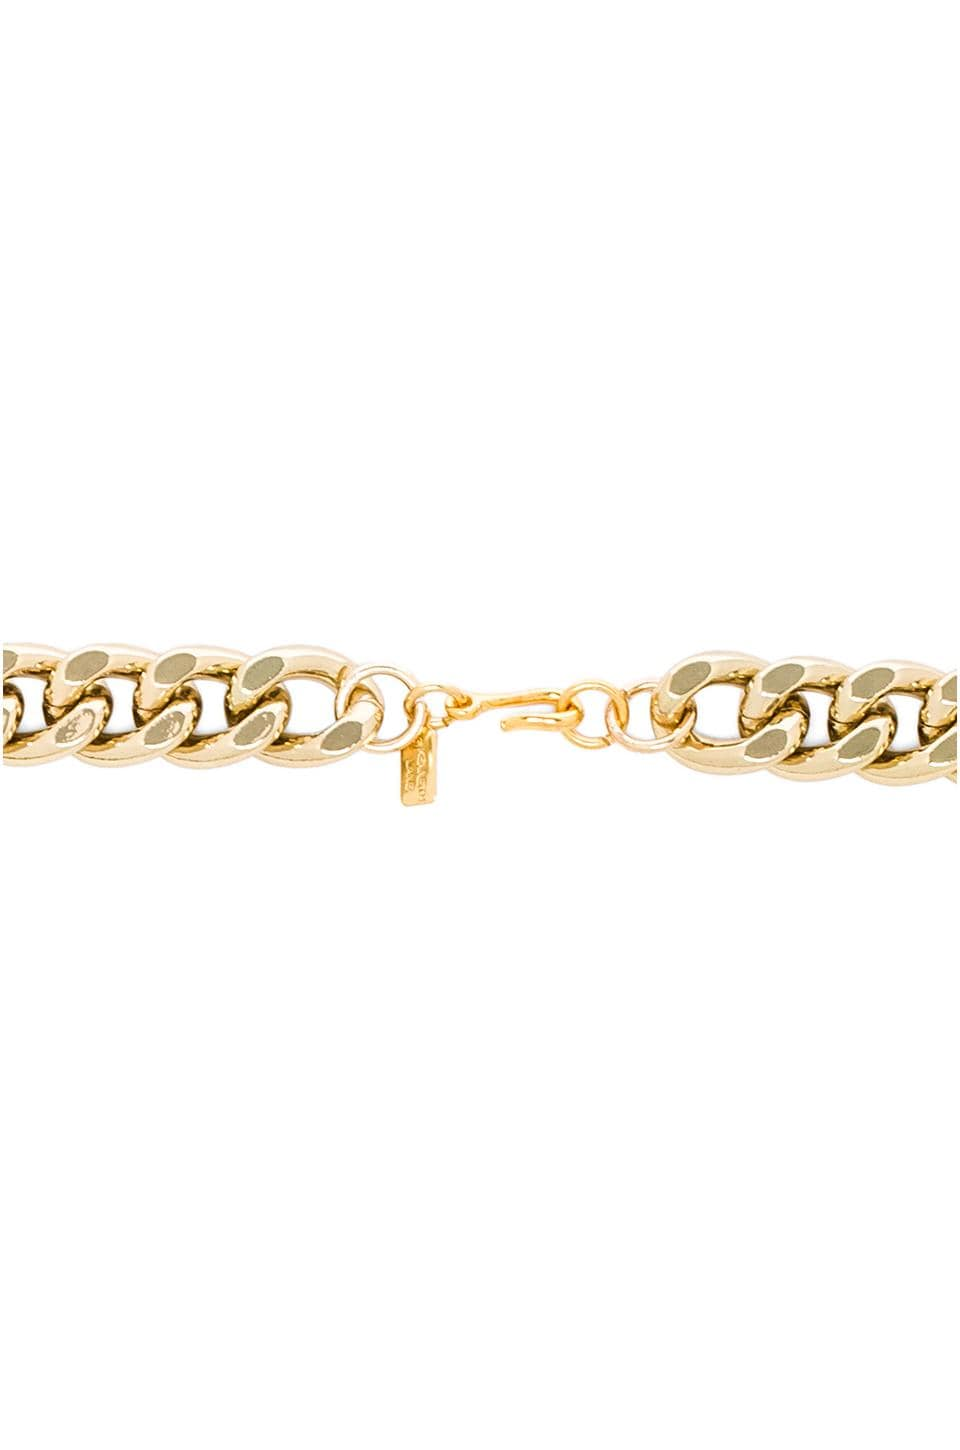 "Kenneth Jay Lane 26"" Gold Link Chain Necklace in Gold"